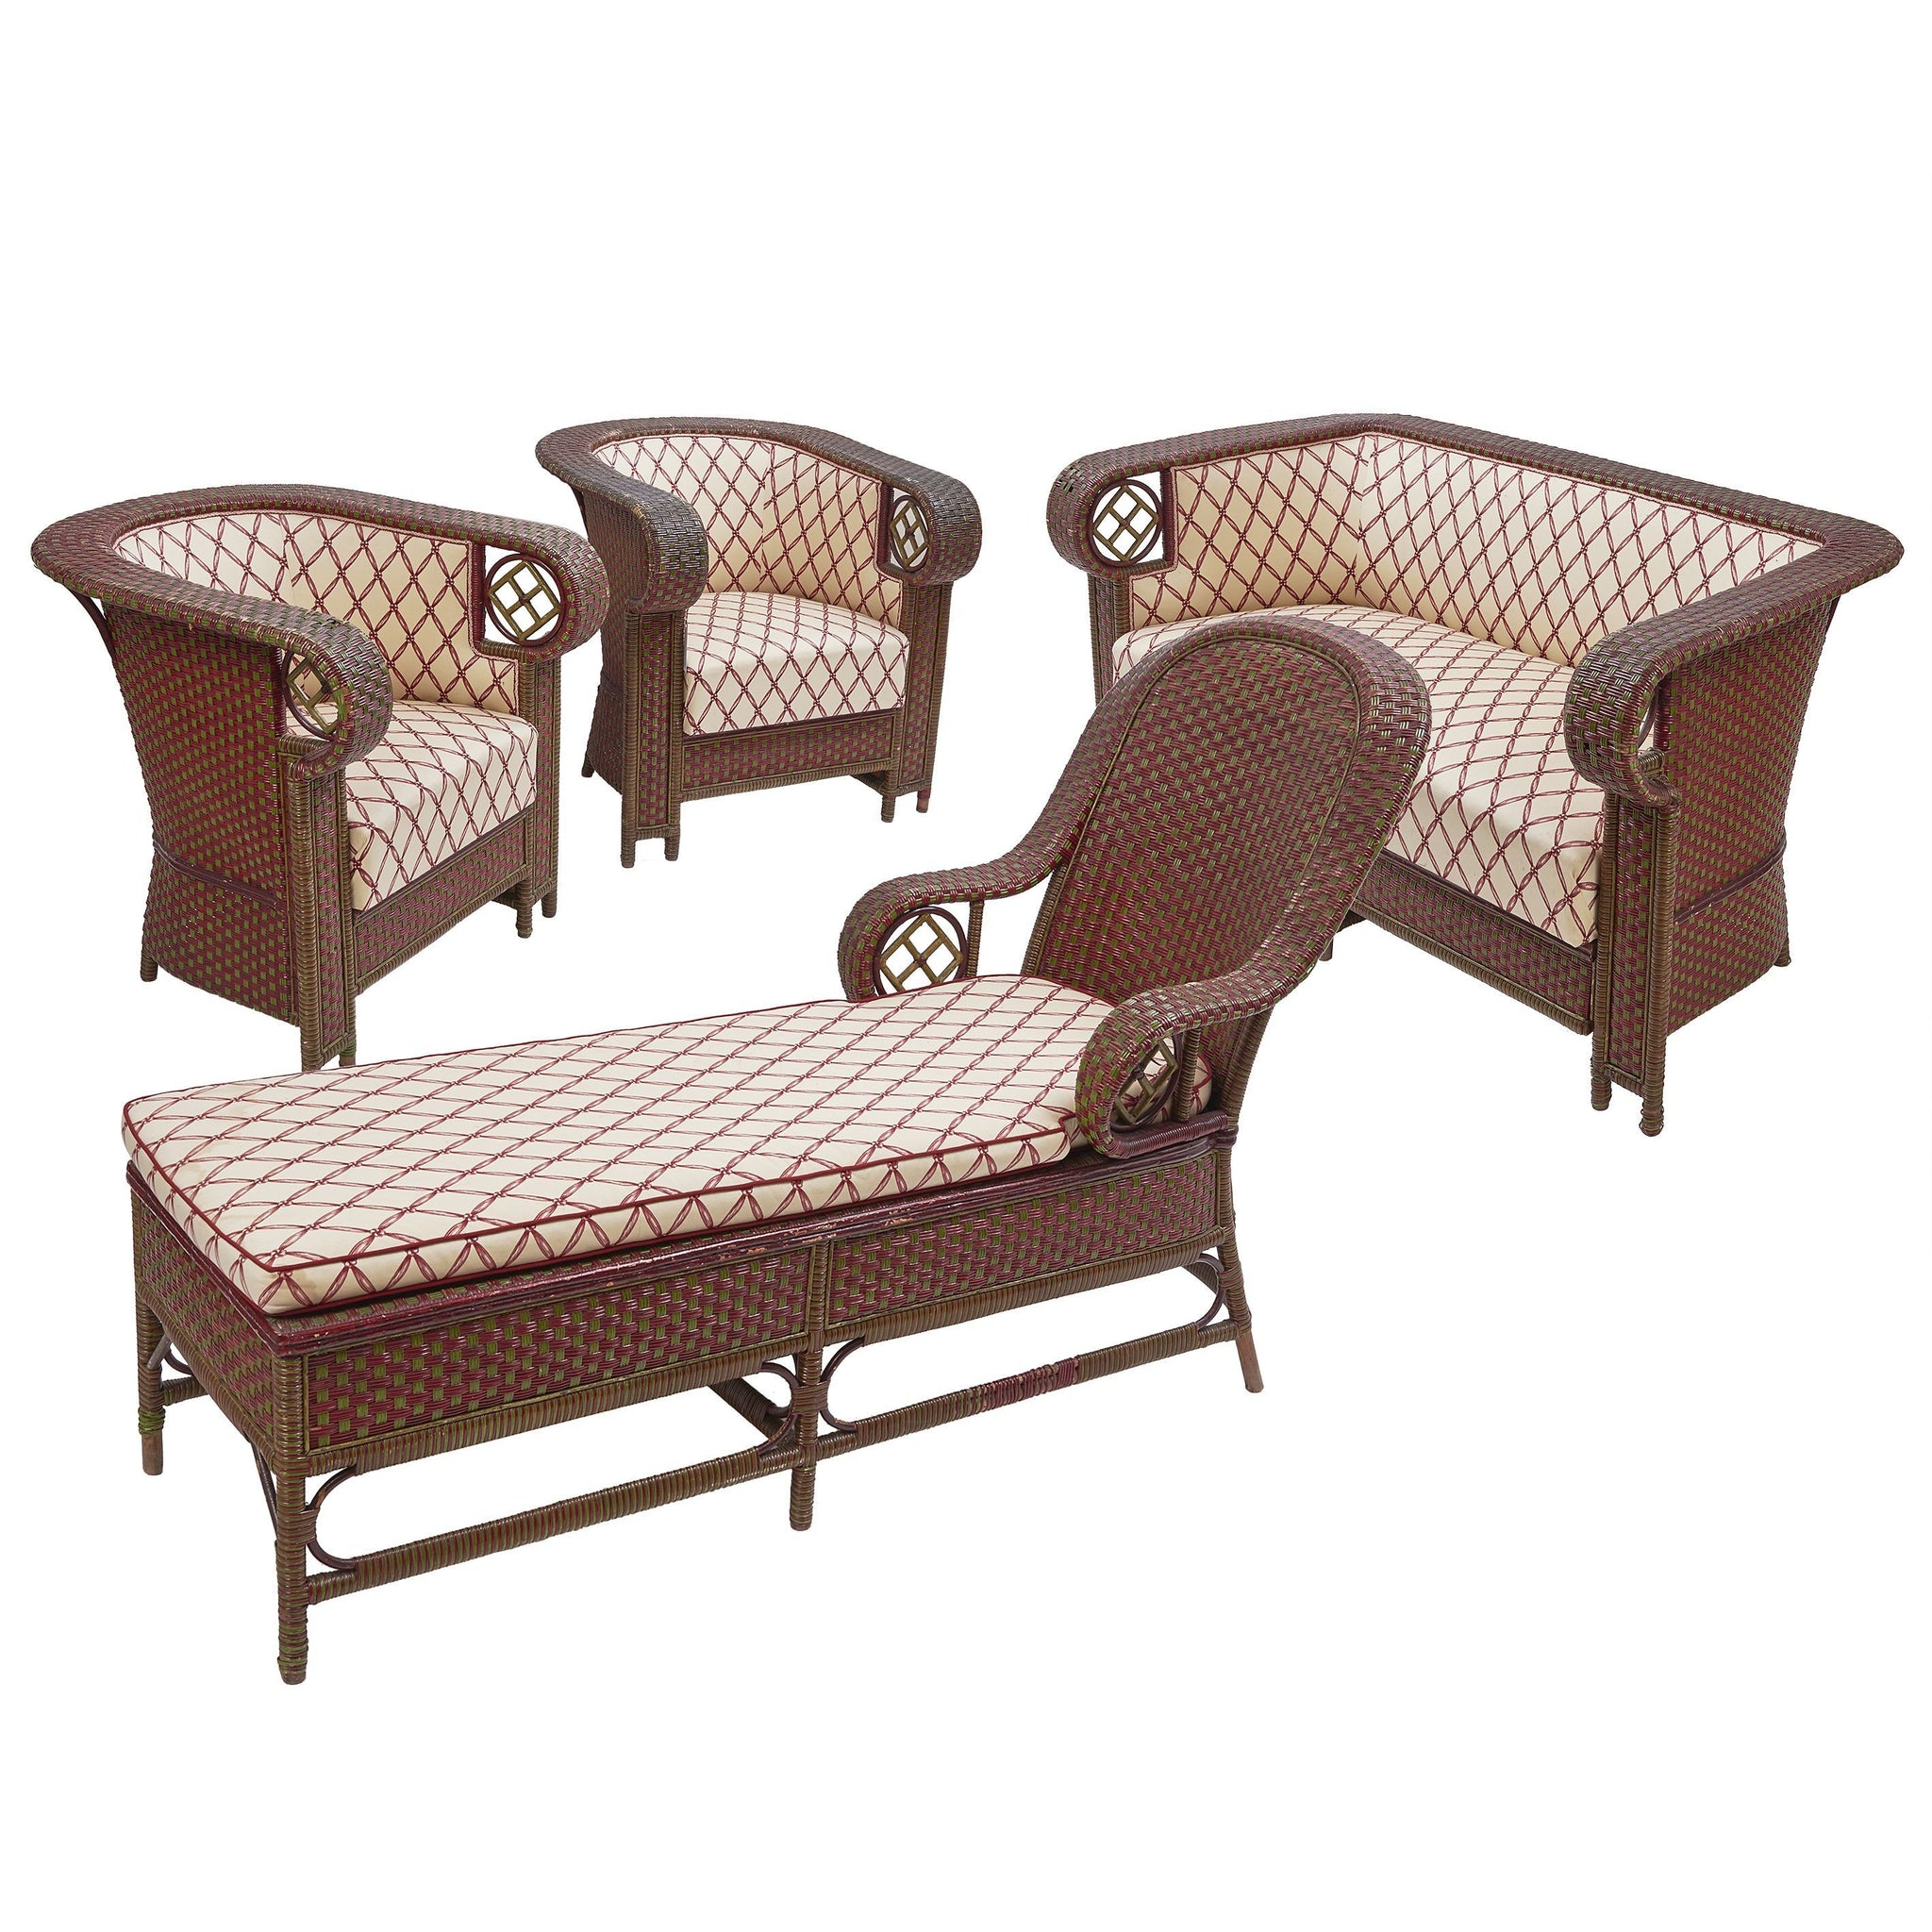 Set of Italian Steamer Furniture